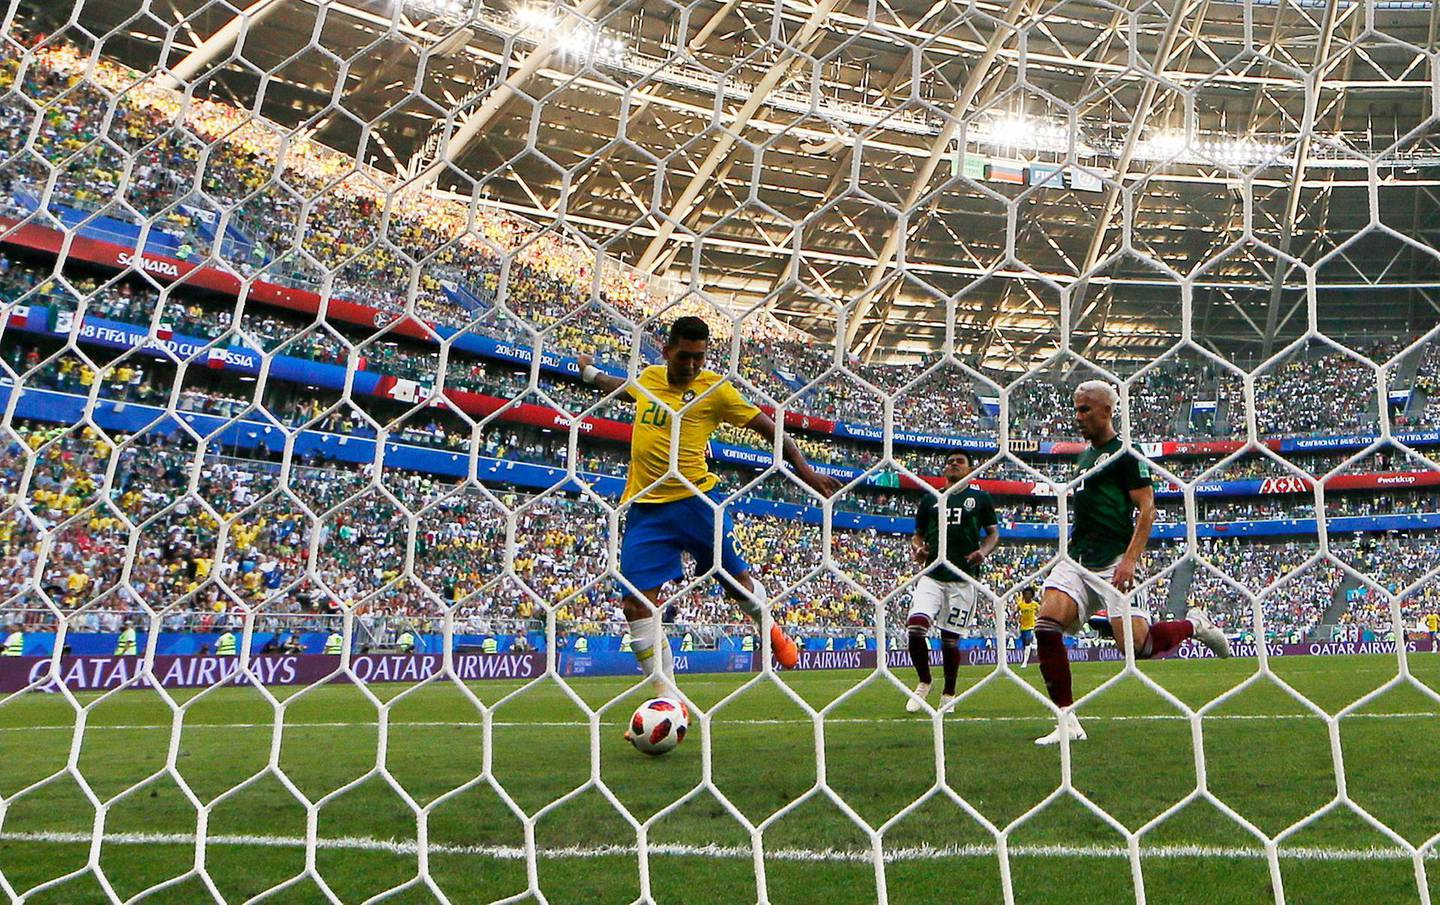 epa06858506 Roberto Firmino (C) of Brazil scores the 2-0 during the FIFA World Cup 2018 round of 16 soccer match between Brazil and Mexico in Samara, Russia, 02 July 2018.  (RESTRICTIONS APPLY: Editorial Use Only, not used in association with any commercial entity - Images must not be used in any form of alert service or push service of any kind including via mobile alert services, downloads to mobile devices or MMS messaging - Images must appear as still images and must not emulate match action video footage - No alteration is made to, and no text or image is superimposed over, any published image which: (a) intentionally obscures or removes a sponsor identification image; or (b) adds or overlays the commercial identification of any third party which is not officially associated with the FIFA World Cup)  EPA/SERGEY DOLZHENKO   EDITORIAL USE ONLY